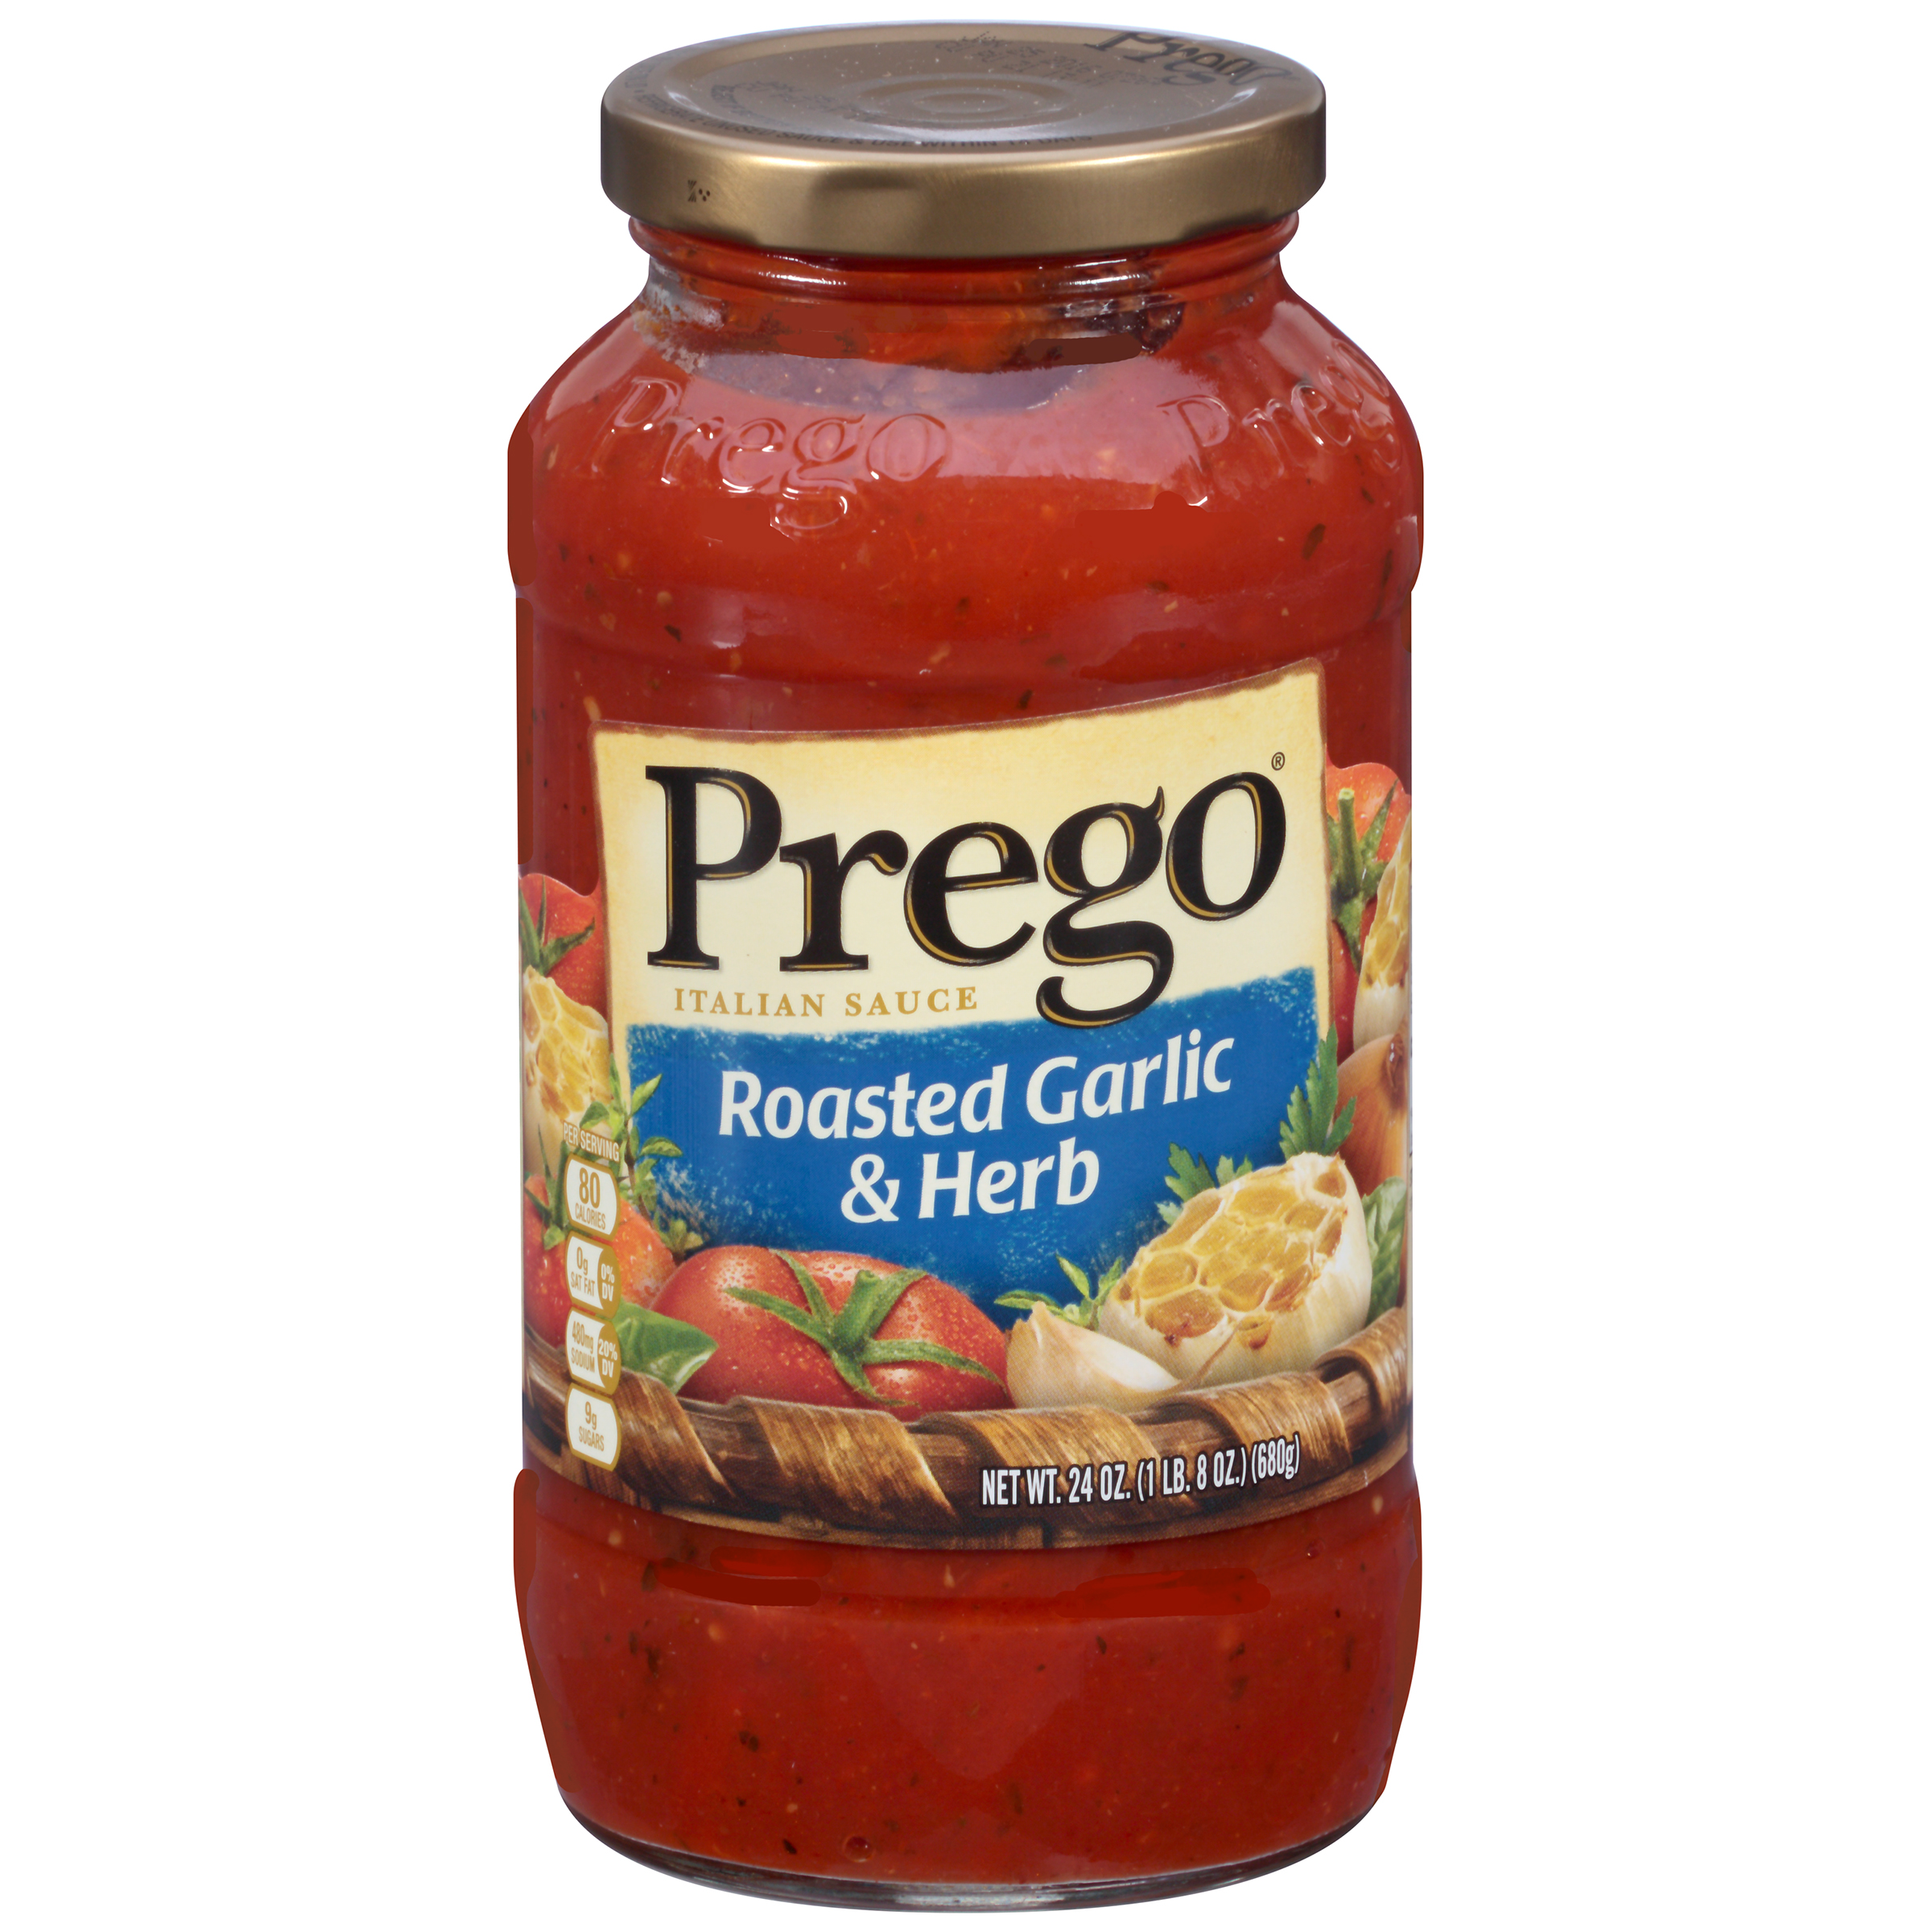 Prego Roasted Garlic & Herb Italian Sauce 24oz